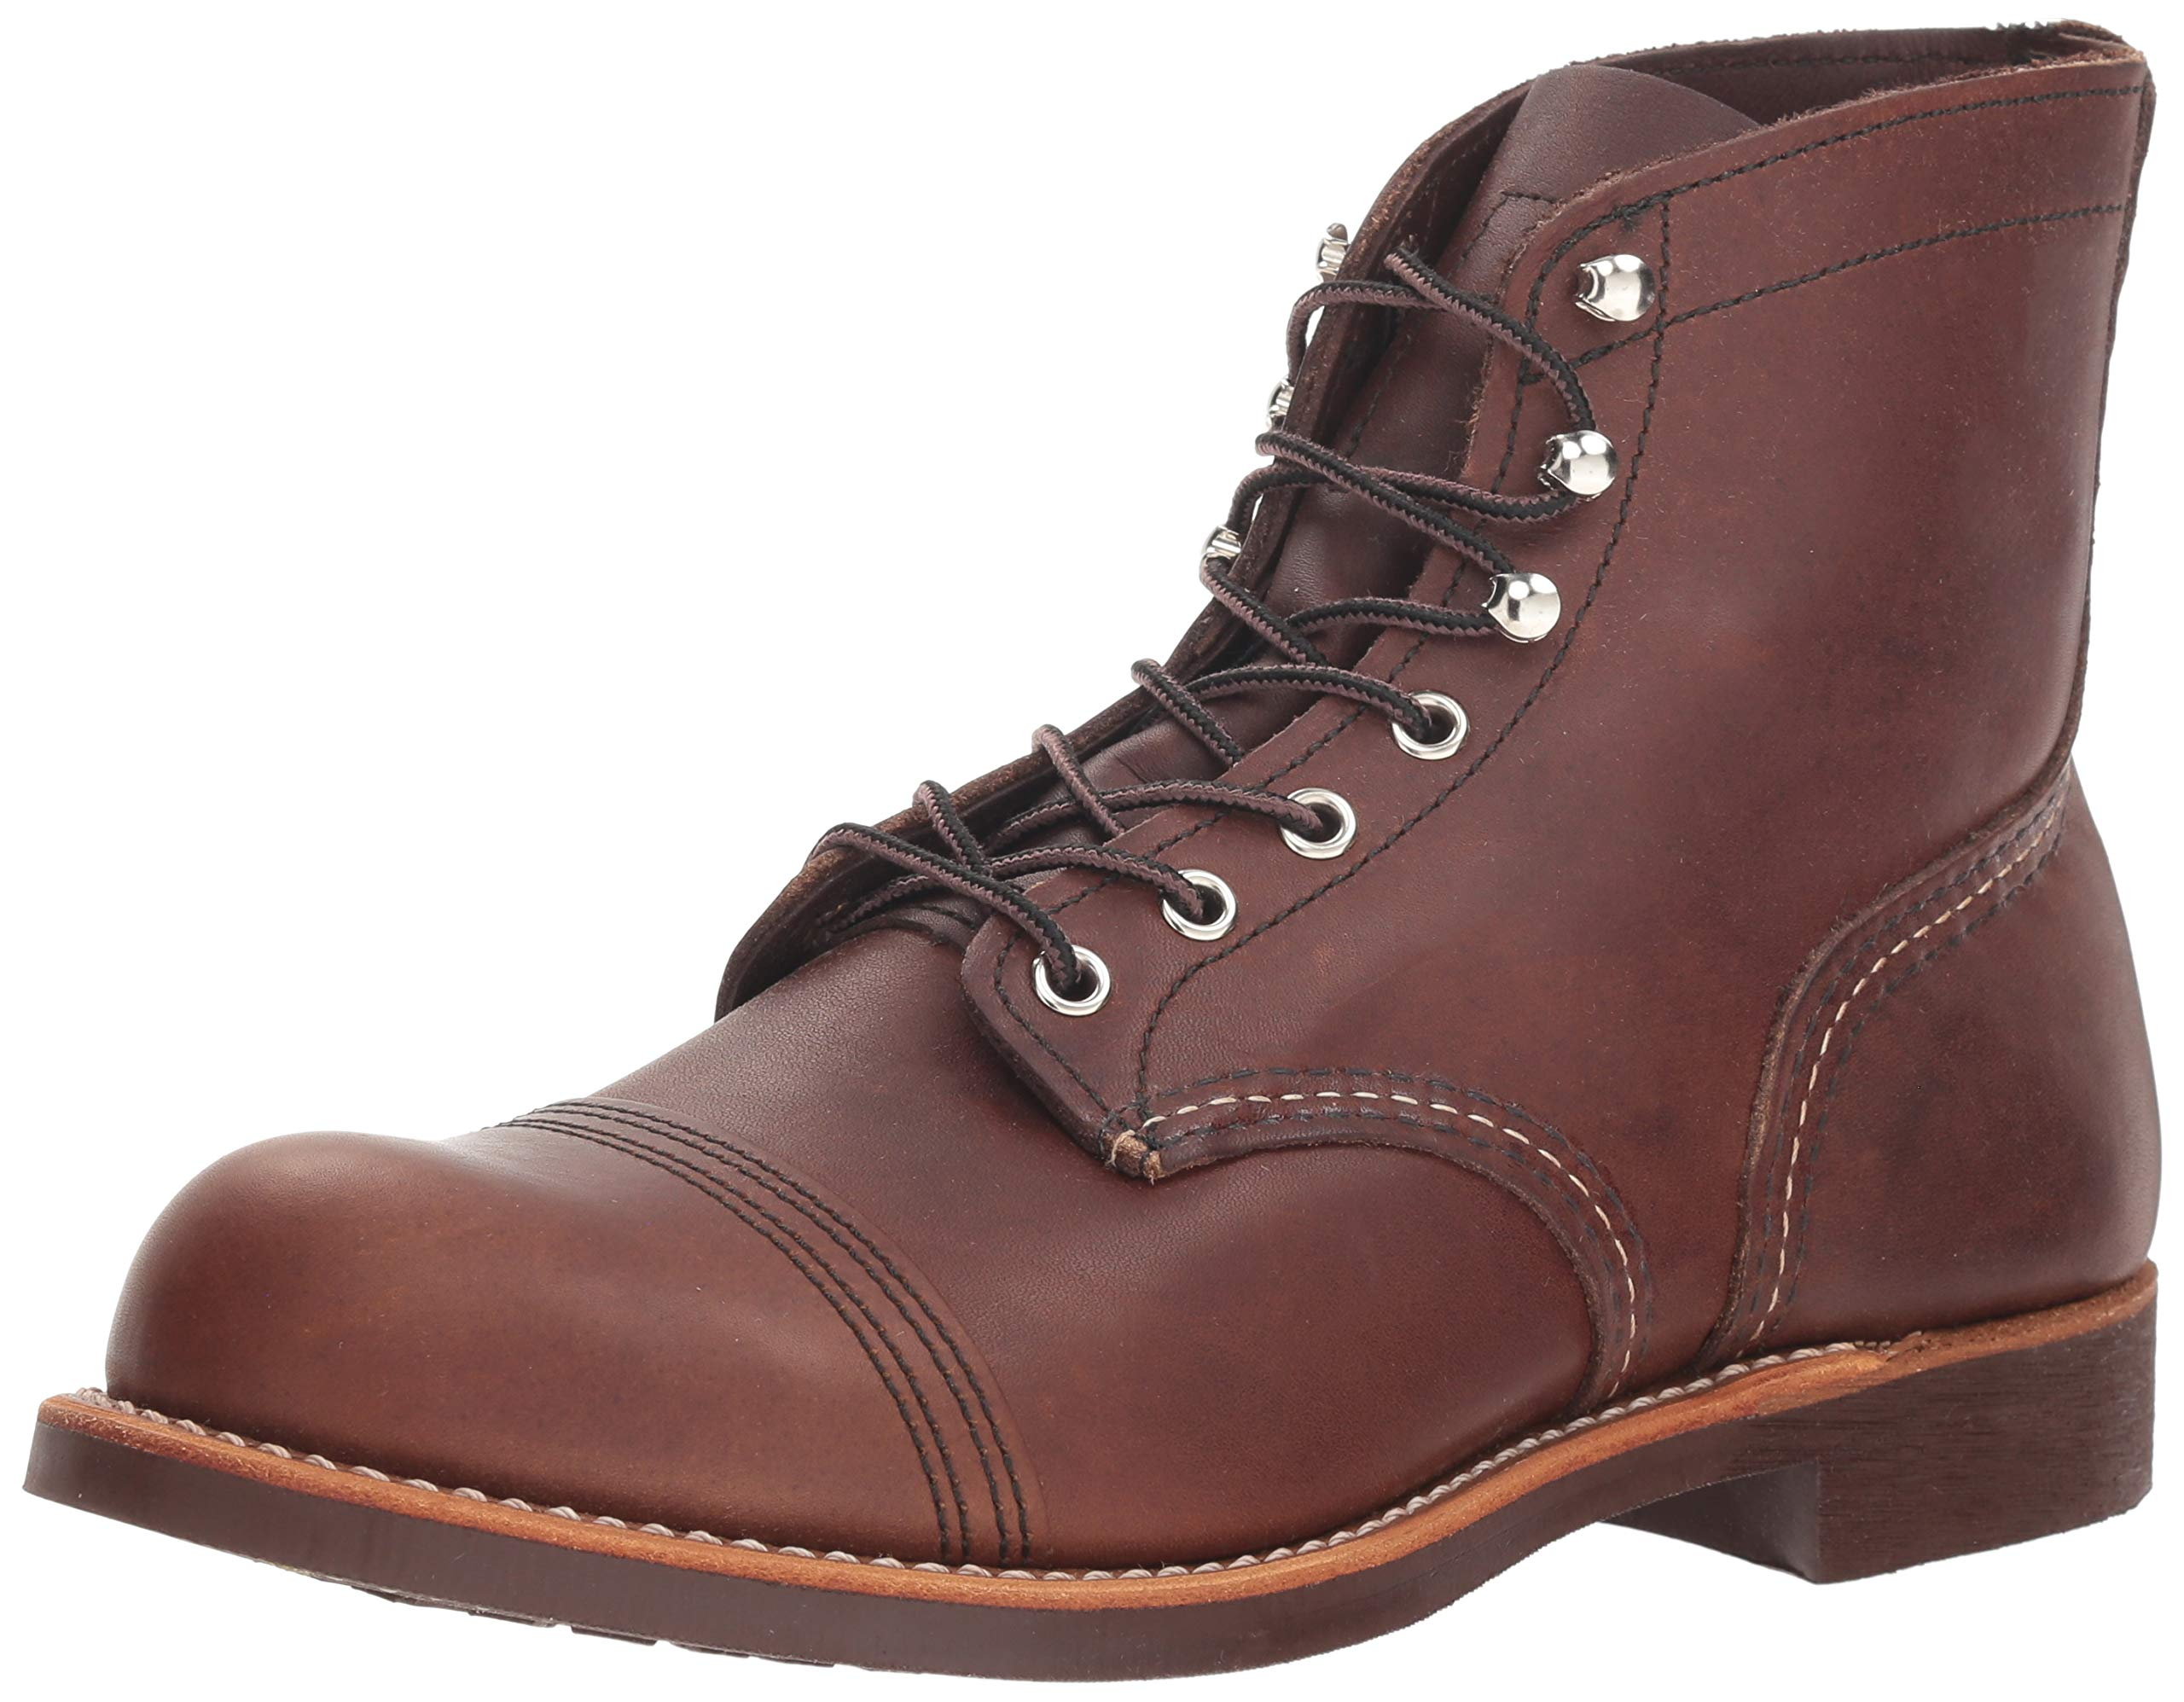 Red Wing Heritage Iron Ranger 6-Inch Boot, Amber Harness, 7.5 D(M) US by Red Wing